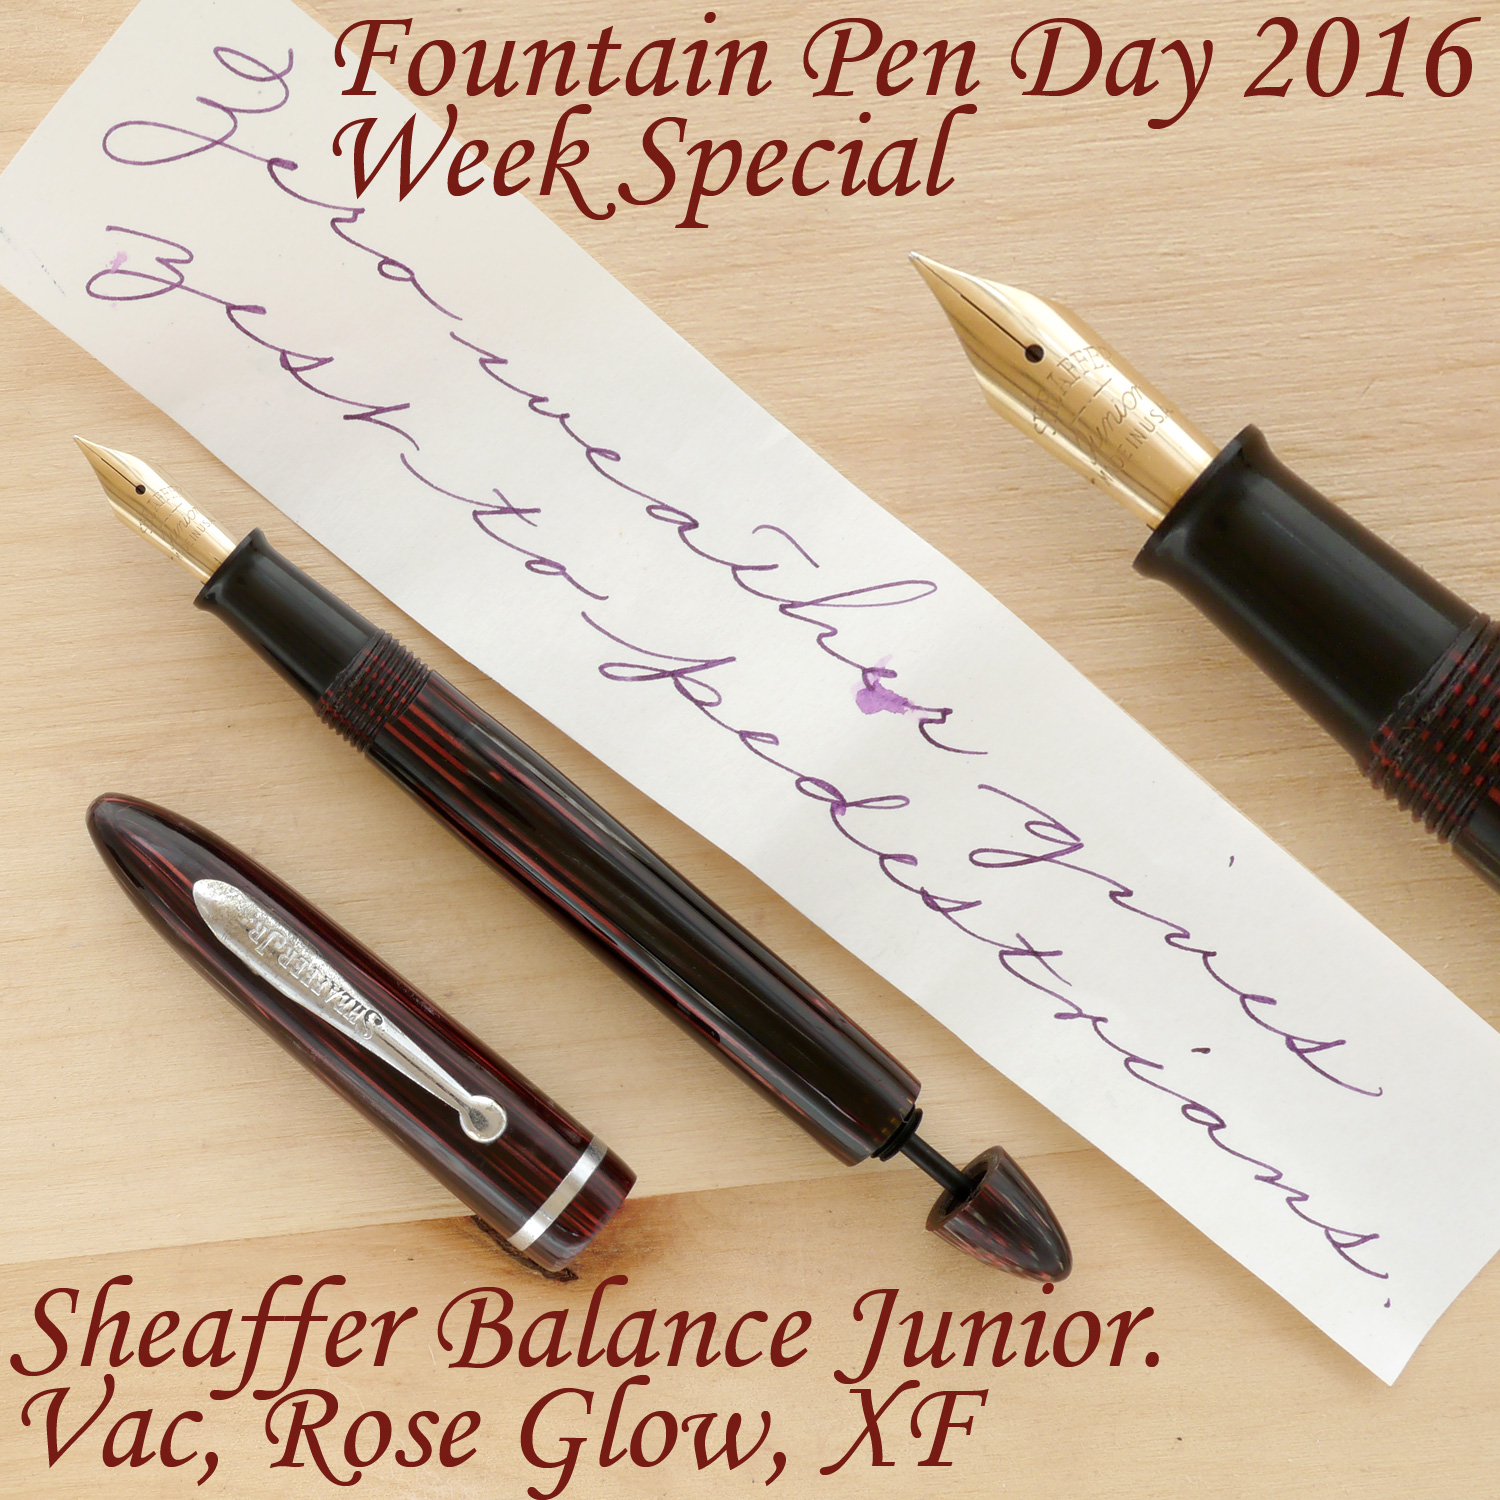 Sheaffer Balance Junior Vac, Rose Glow, XF, uncapped, with the plunger partially extended